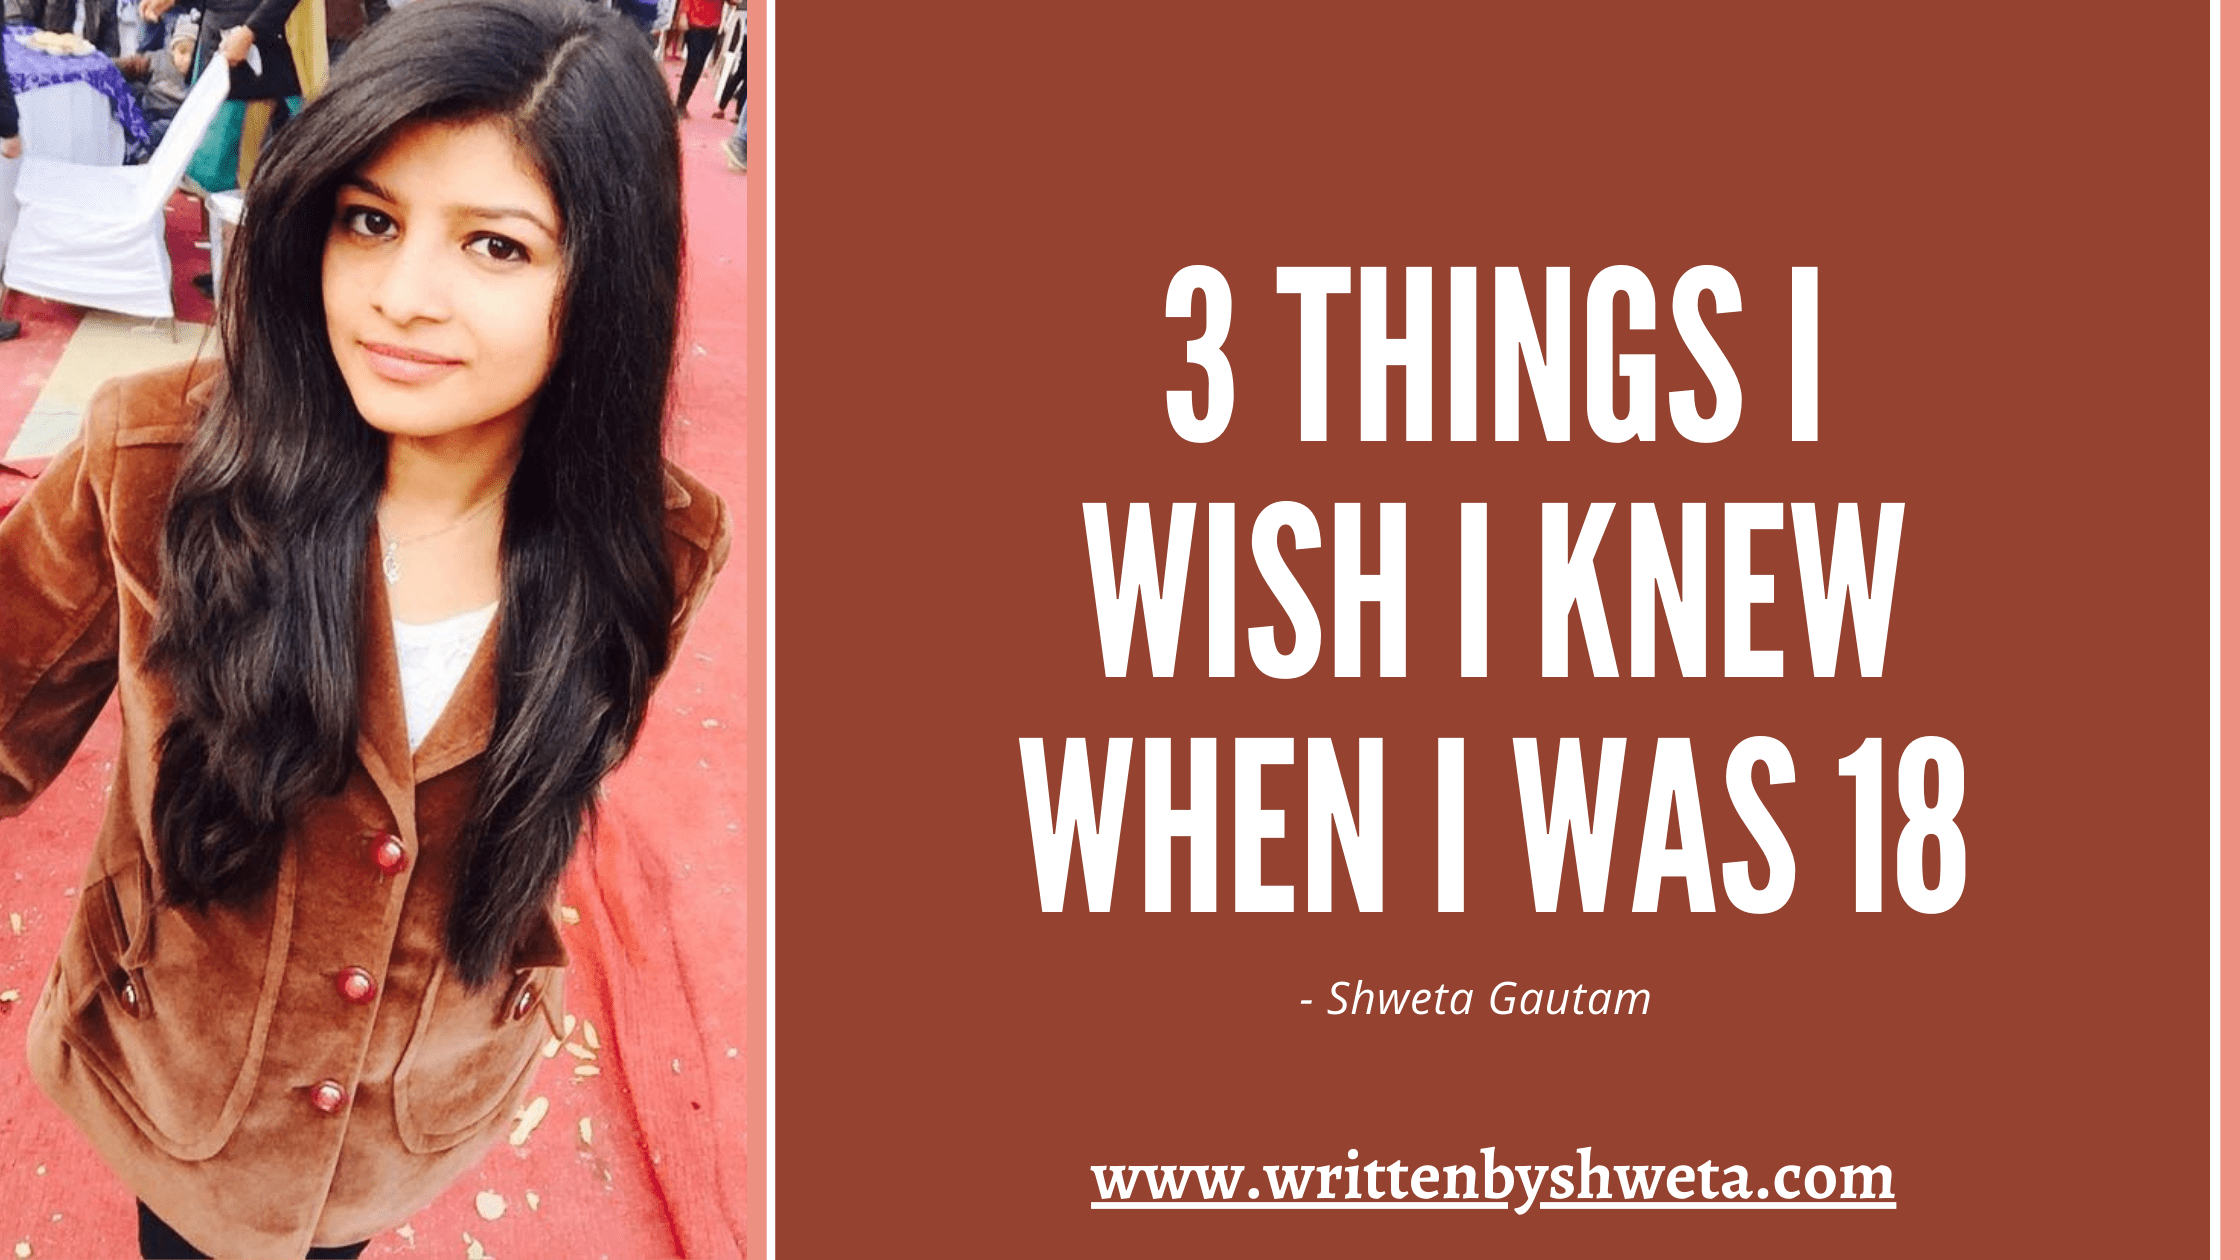 3 THINGS I WISH I KNEW WHEN I WAS 18